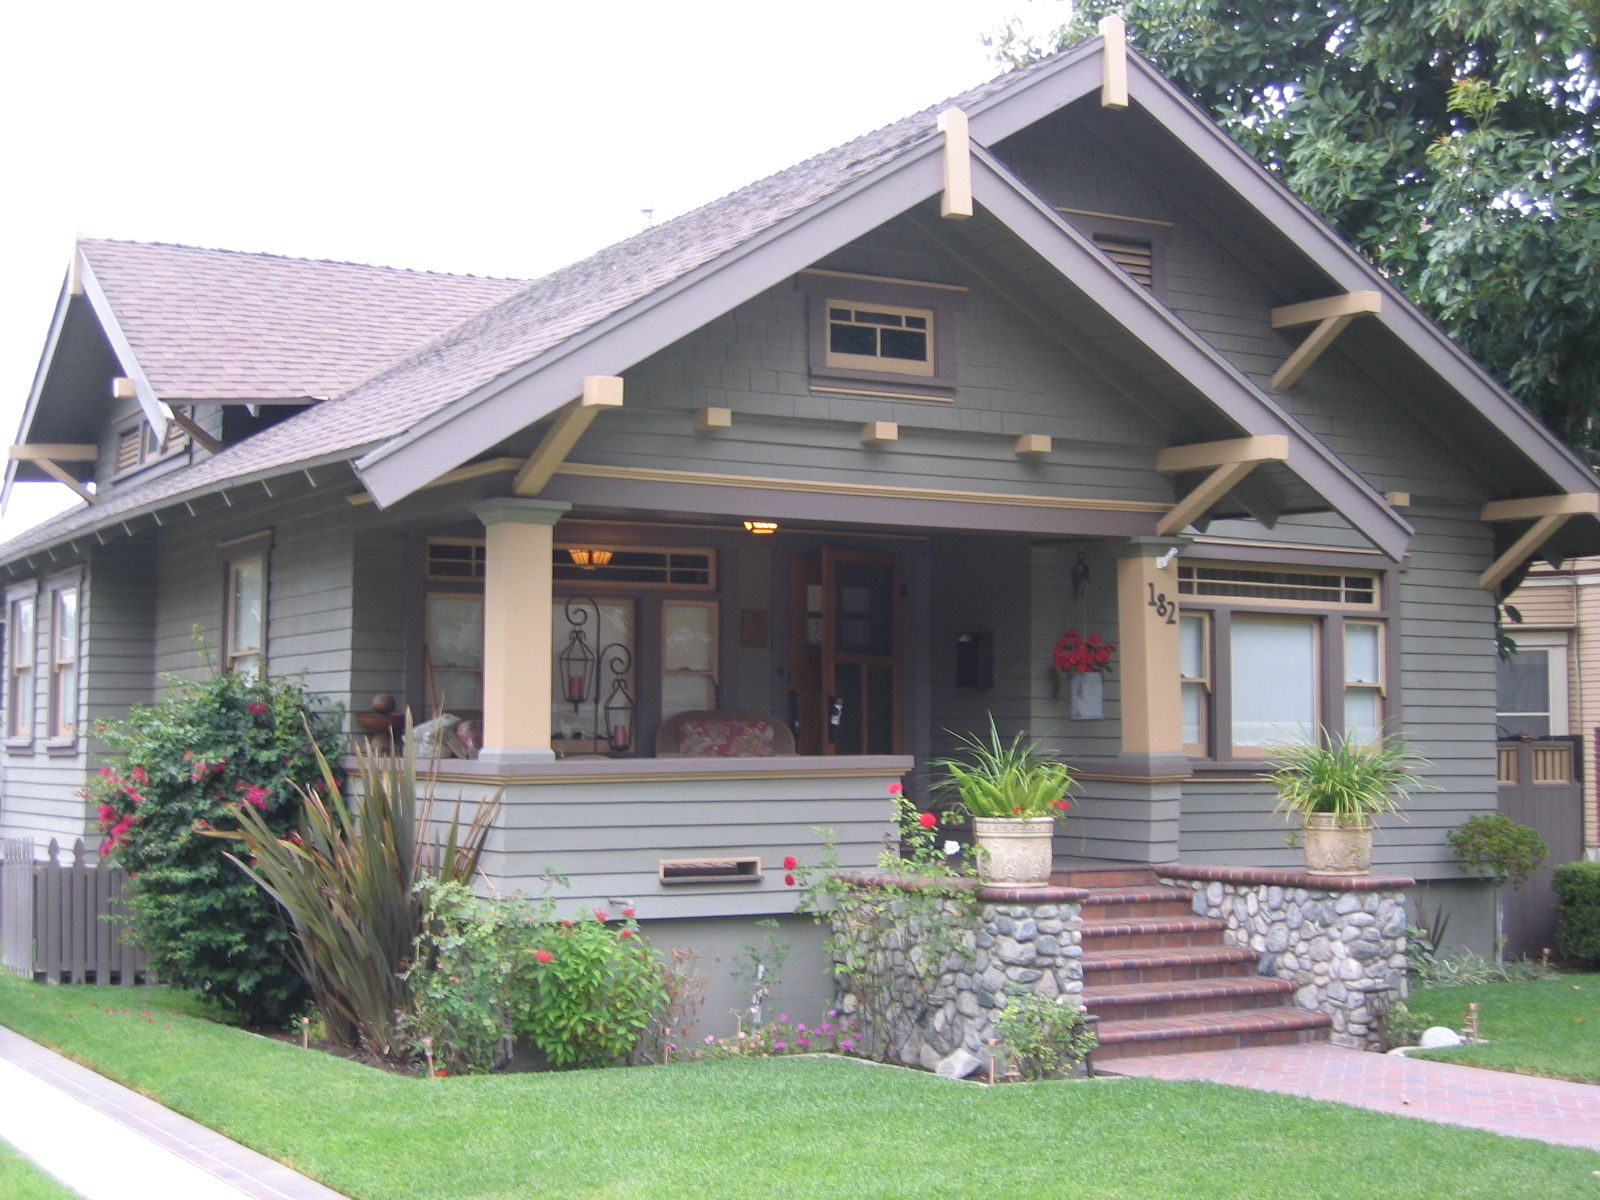 Craftsman house pictures craftsman home style sight for Craftsman style home builders